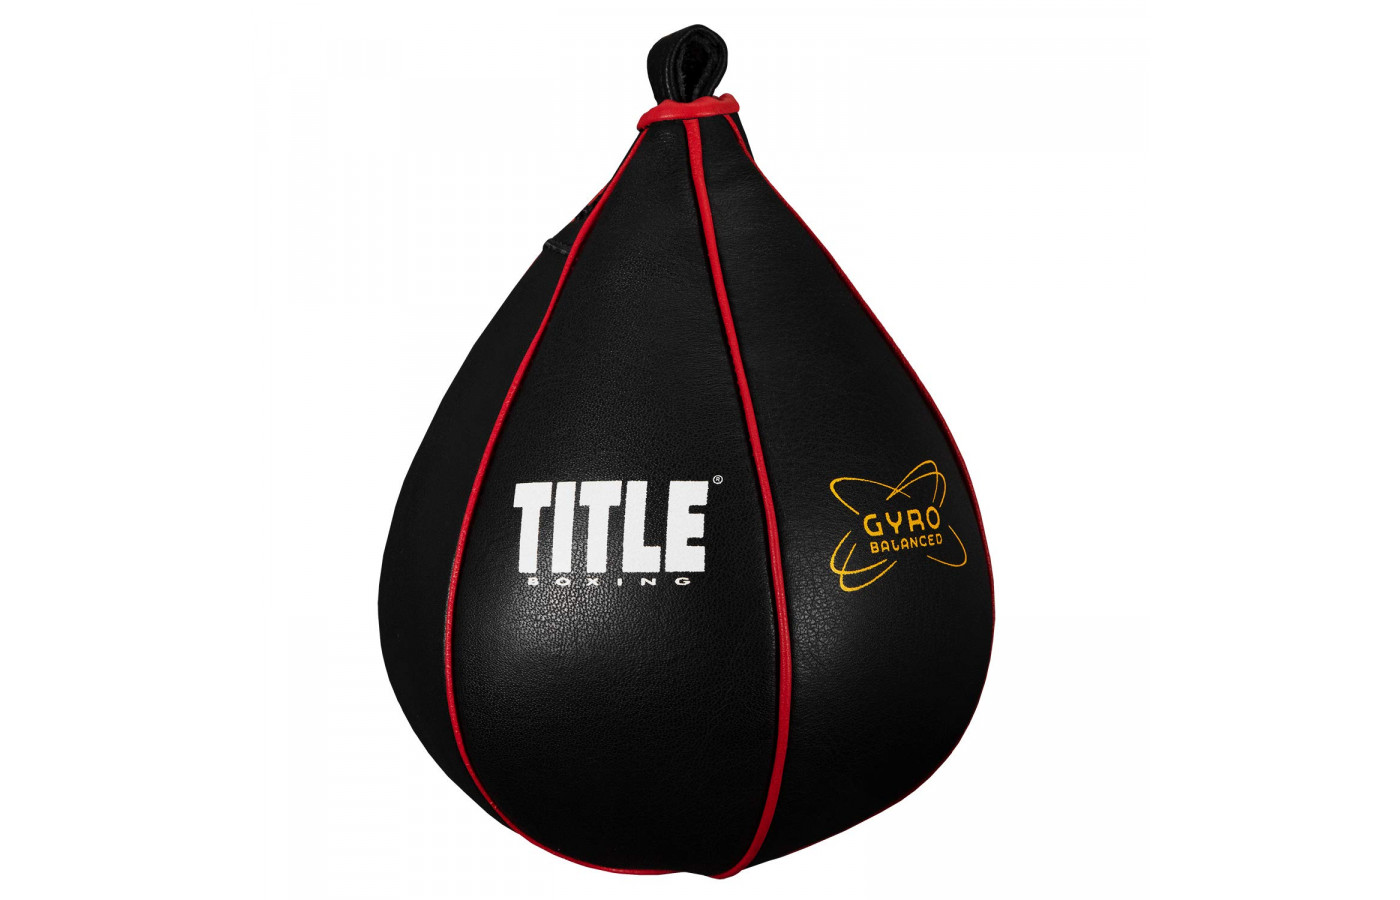 title boxing gyro non lace side